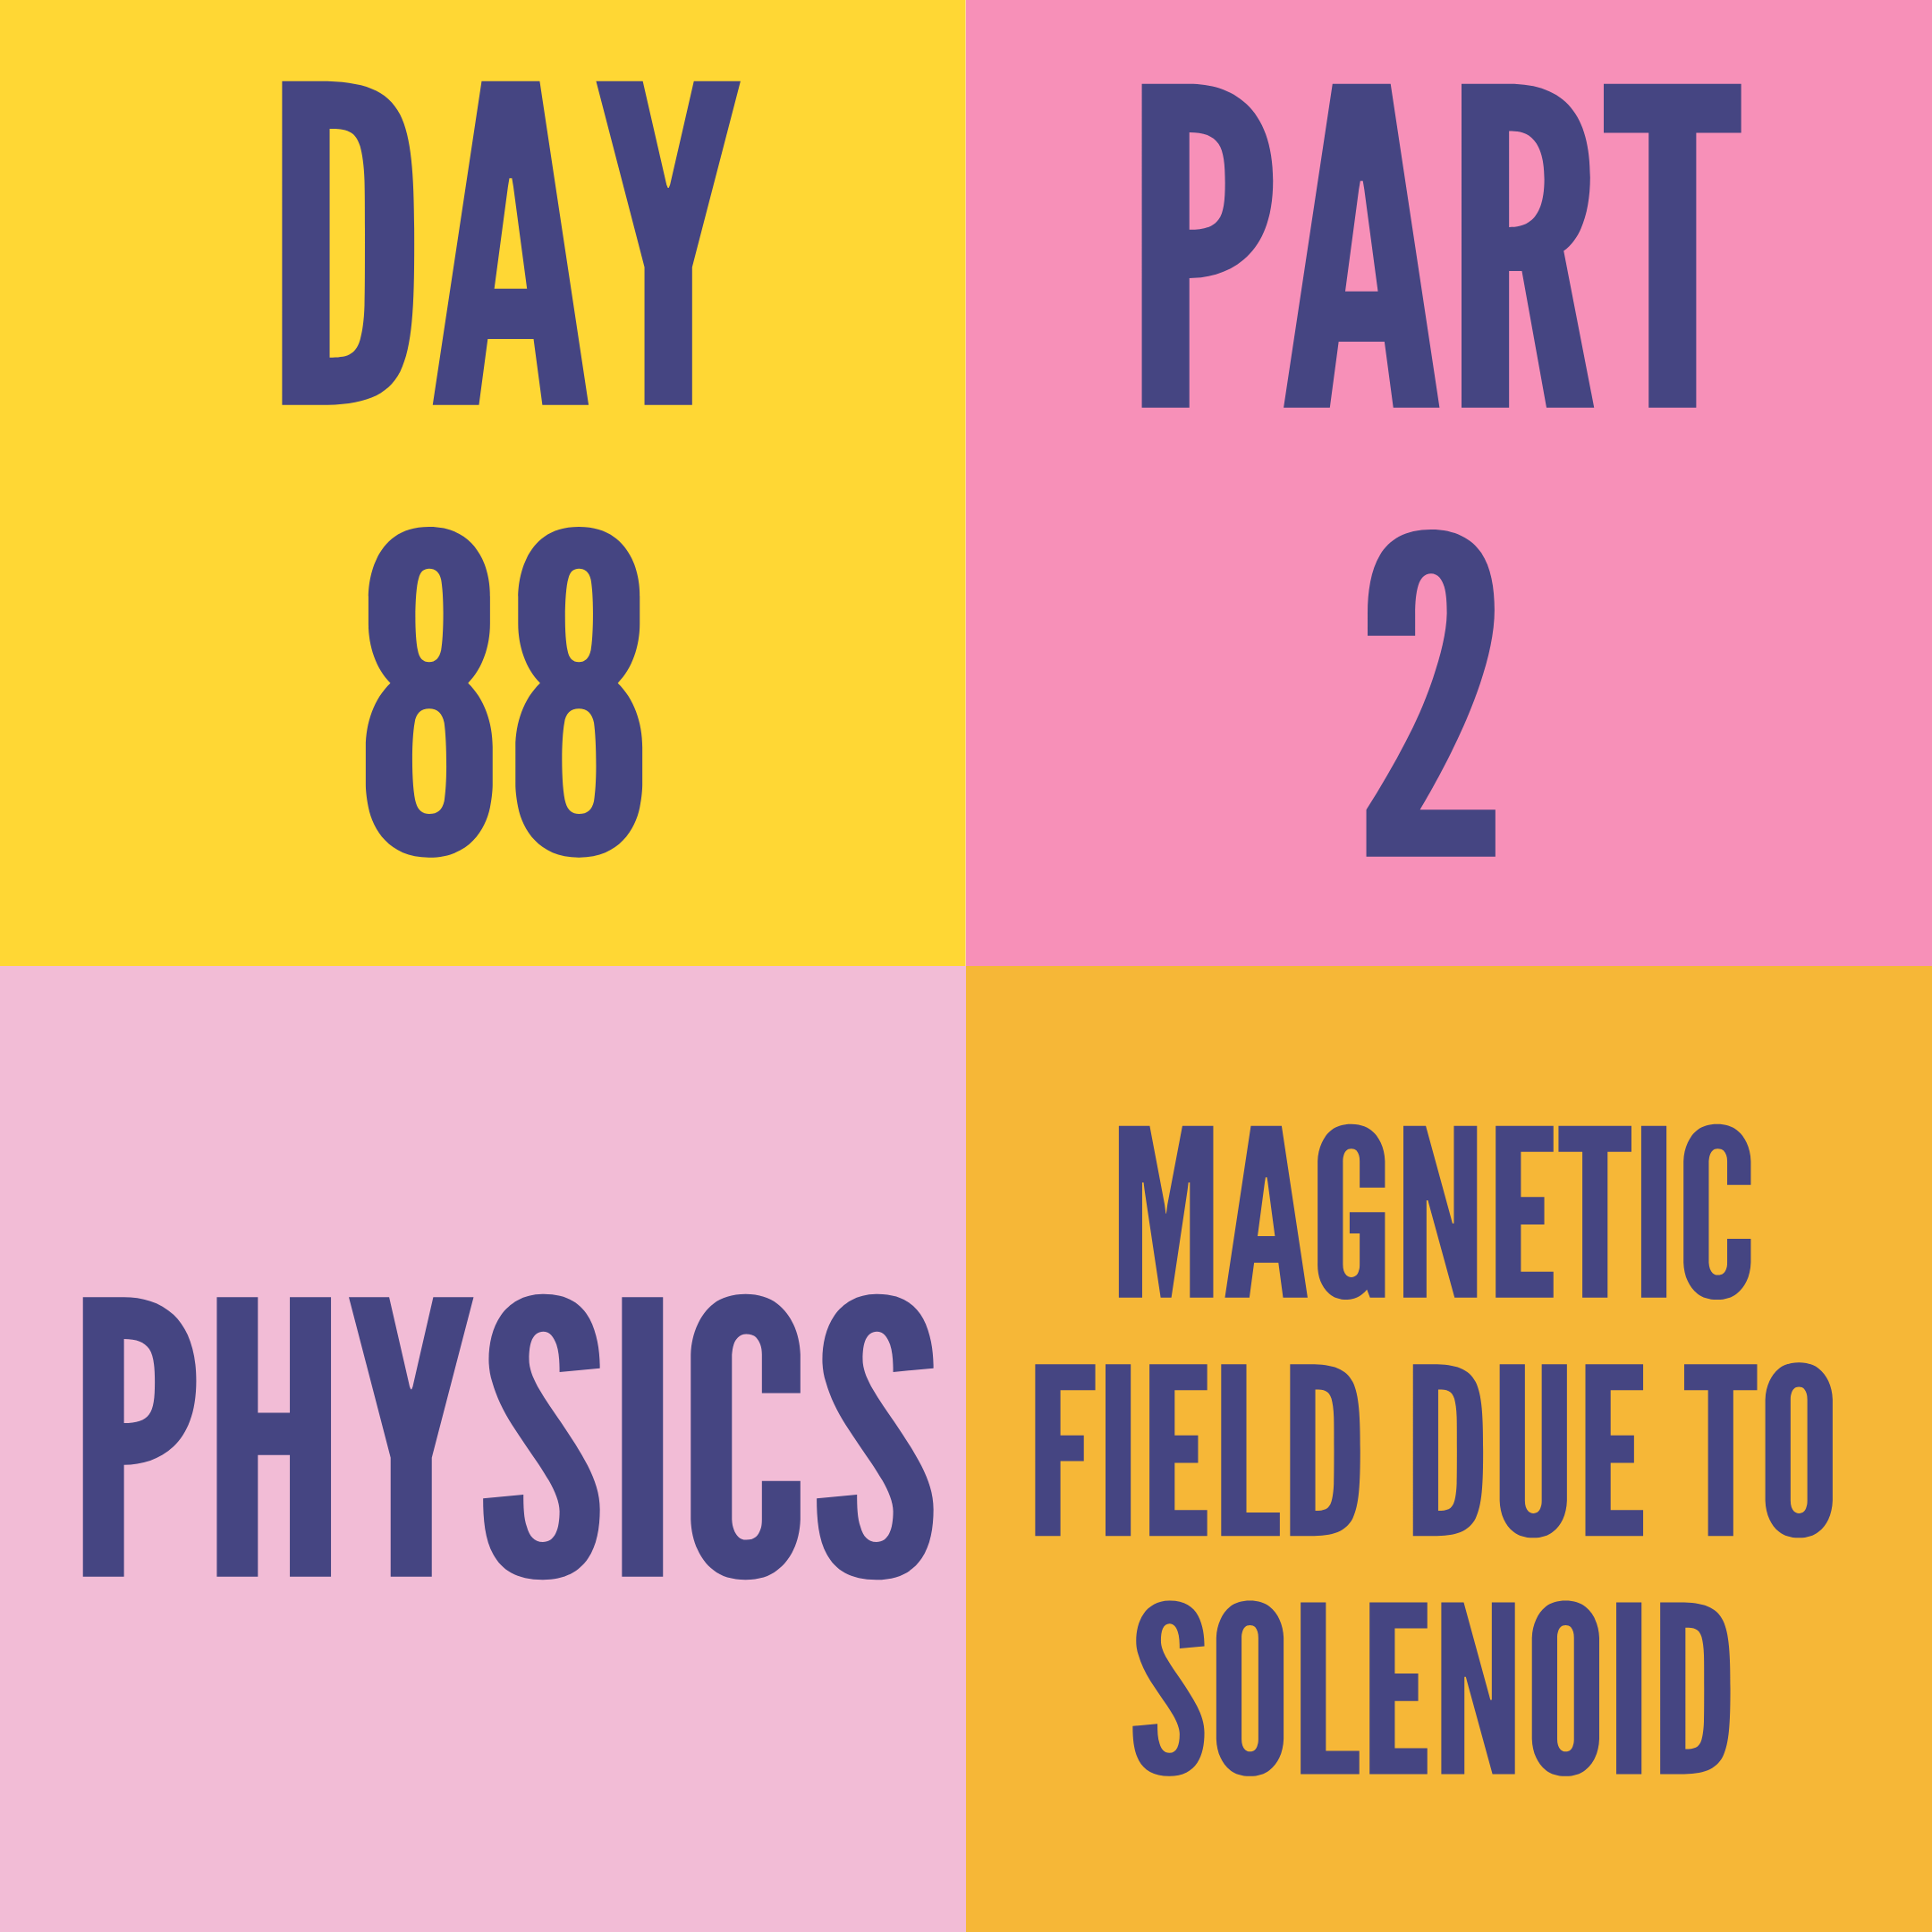 DAY-88 PART-2 MAGNETIC FIELD DUE TO SOLENOID